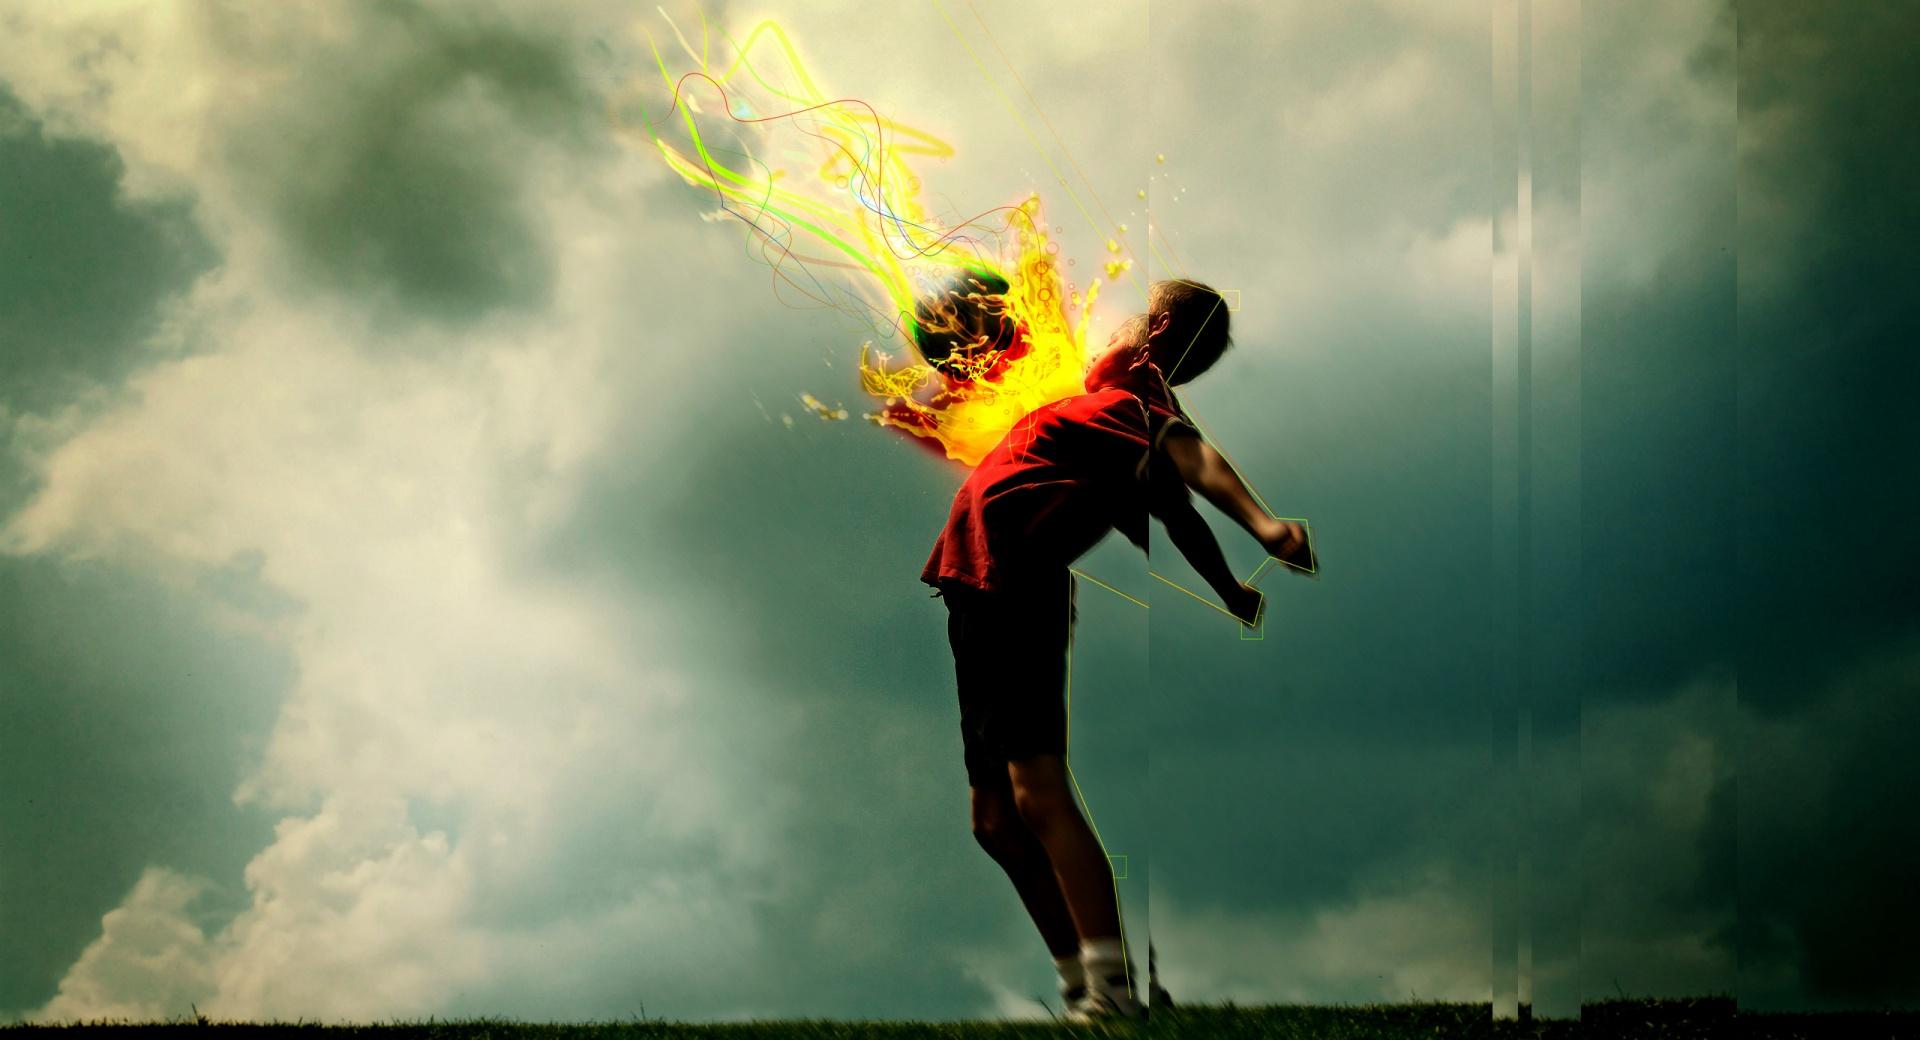 The Gallery For Flaming Football Background Images: Flaming Football Wallpaper HD Download